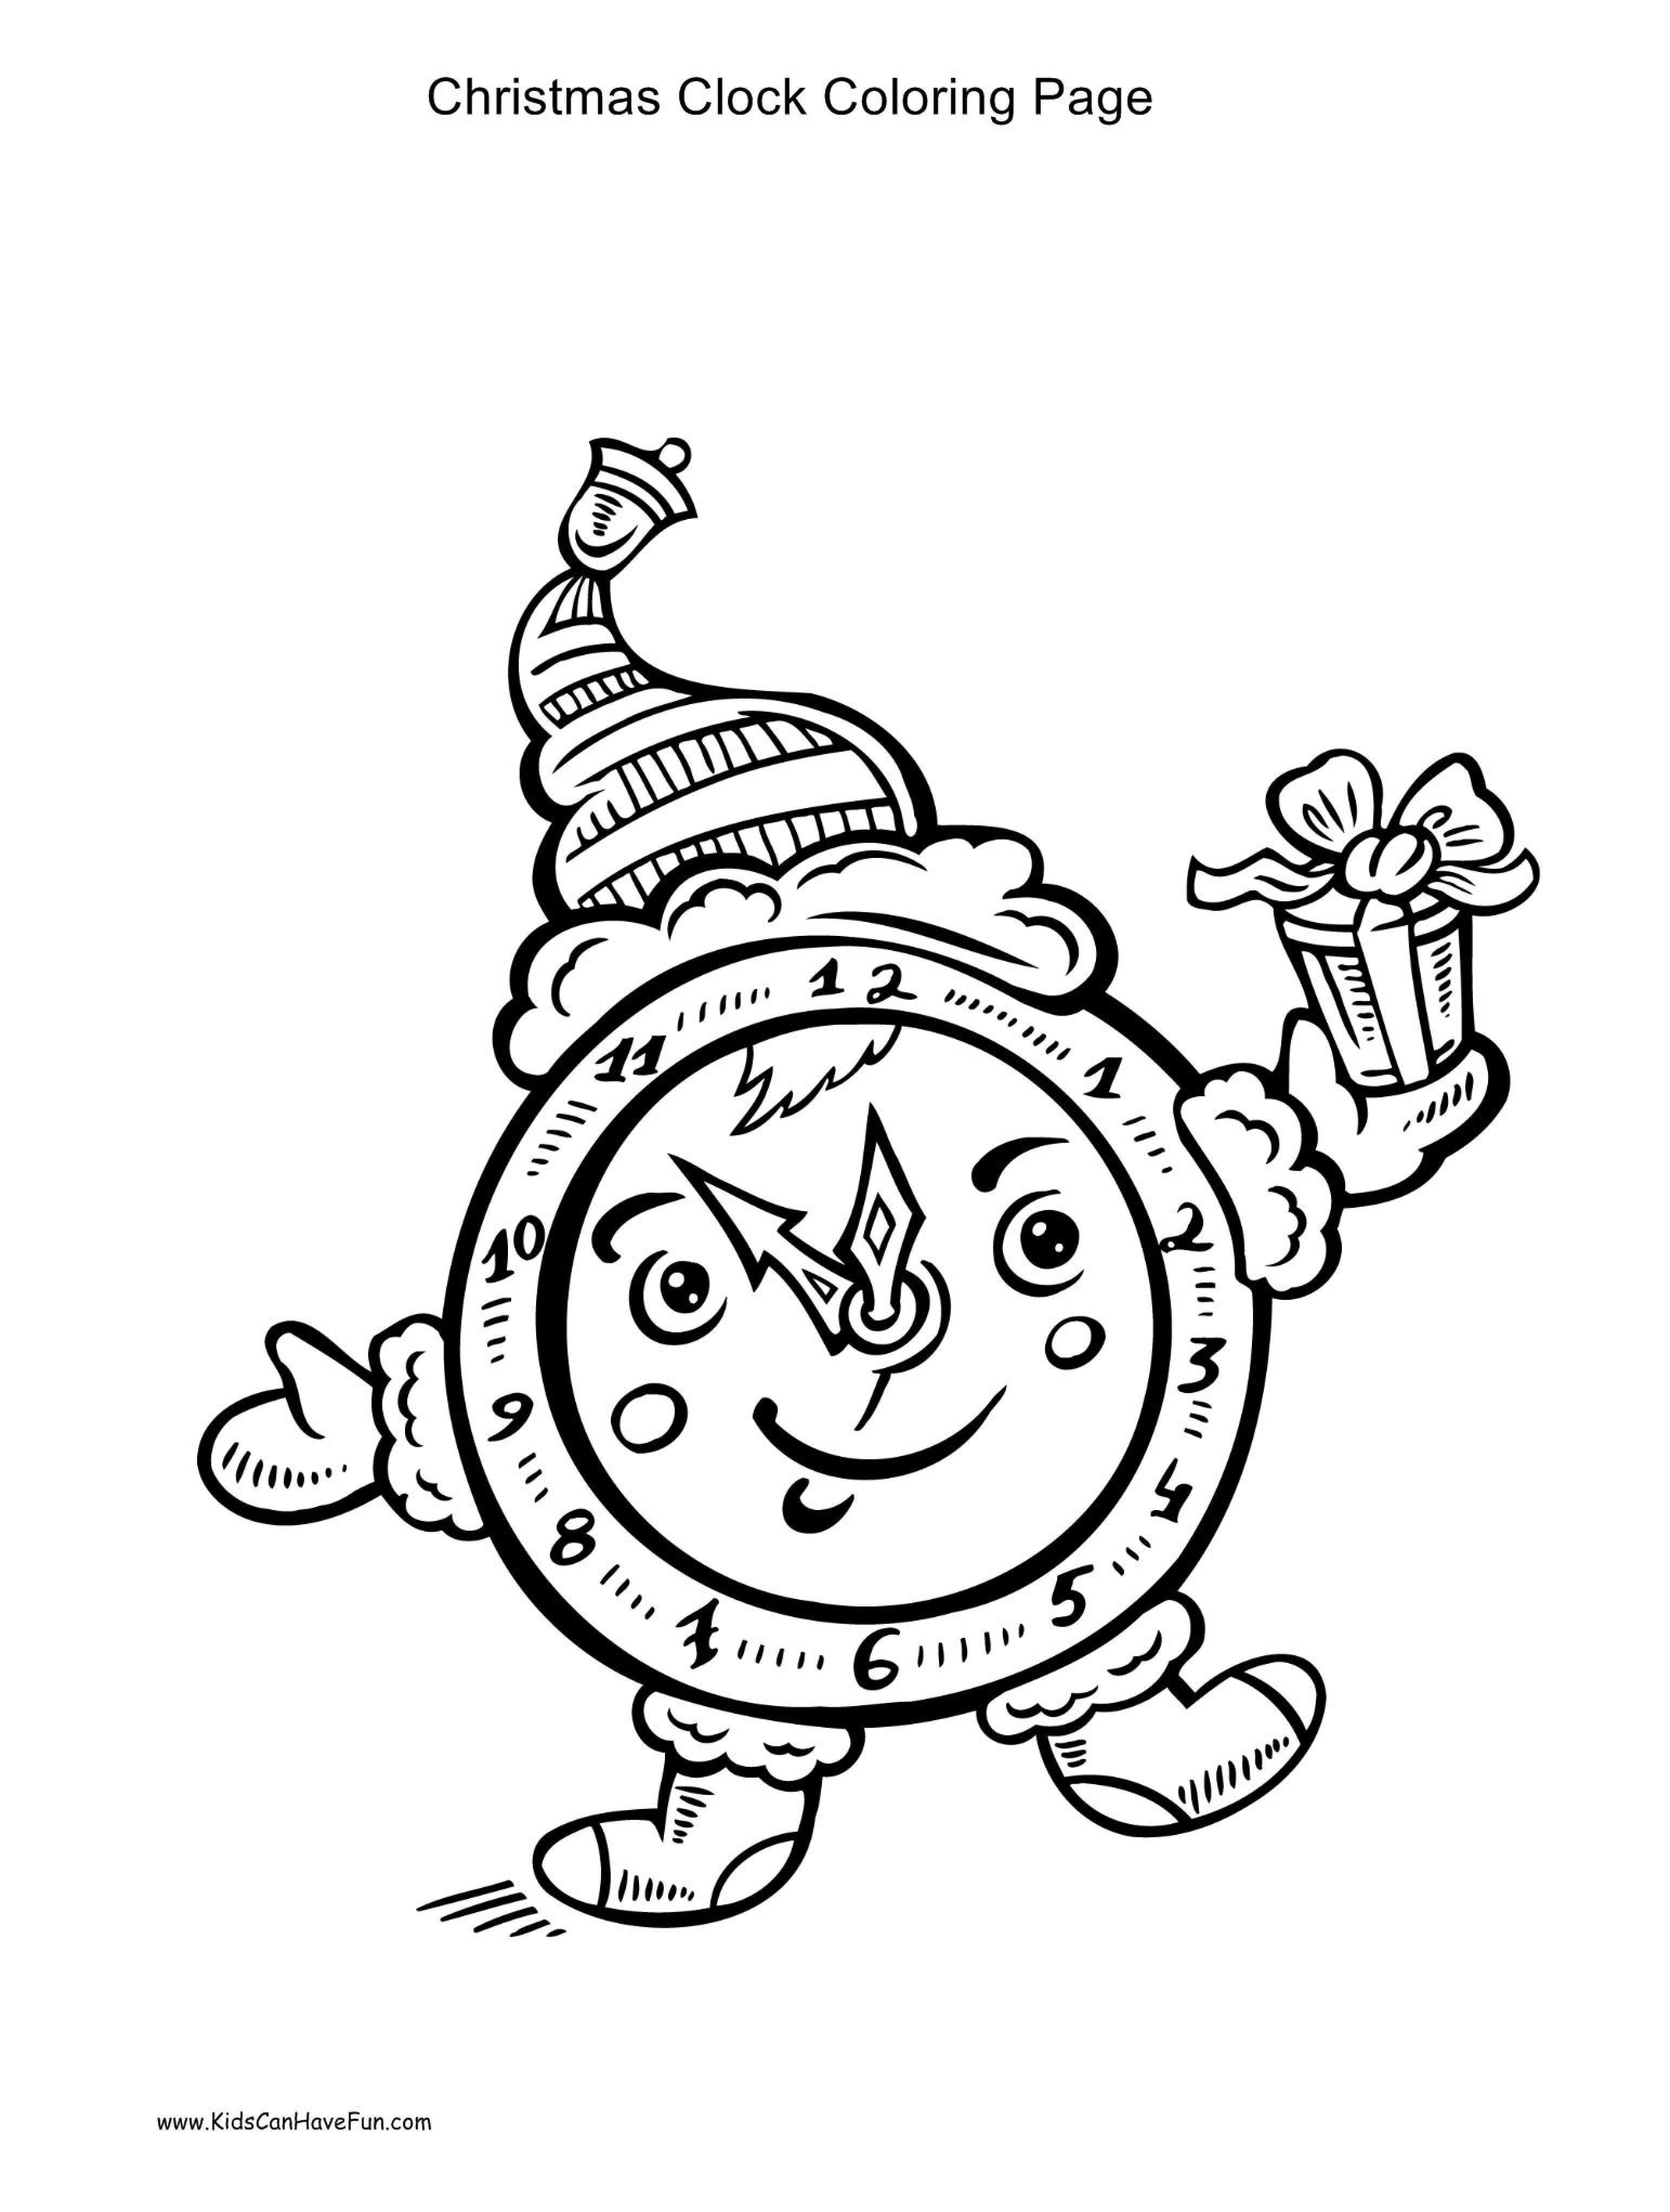 Christmas clock coloring page http://www.kidscanhavefun.com ...